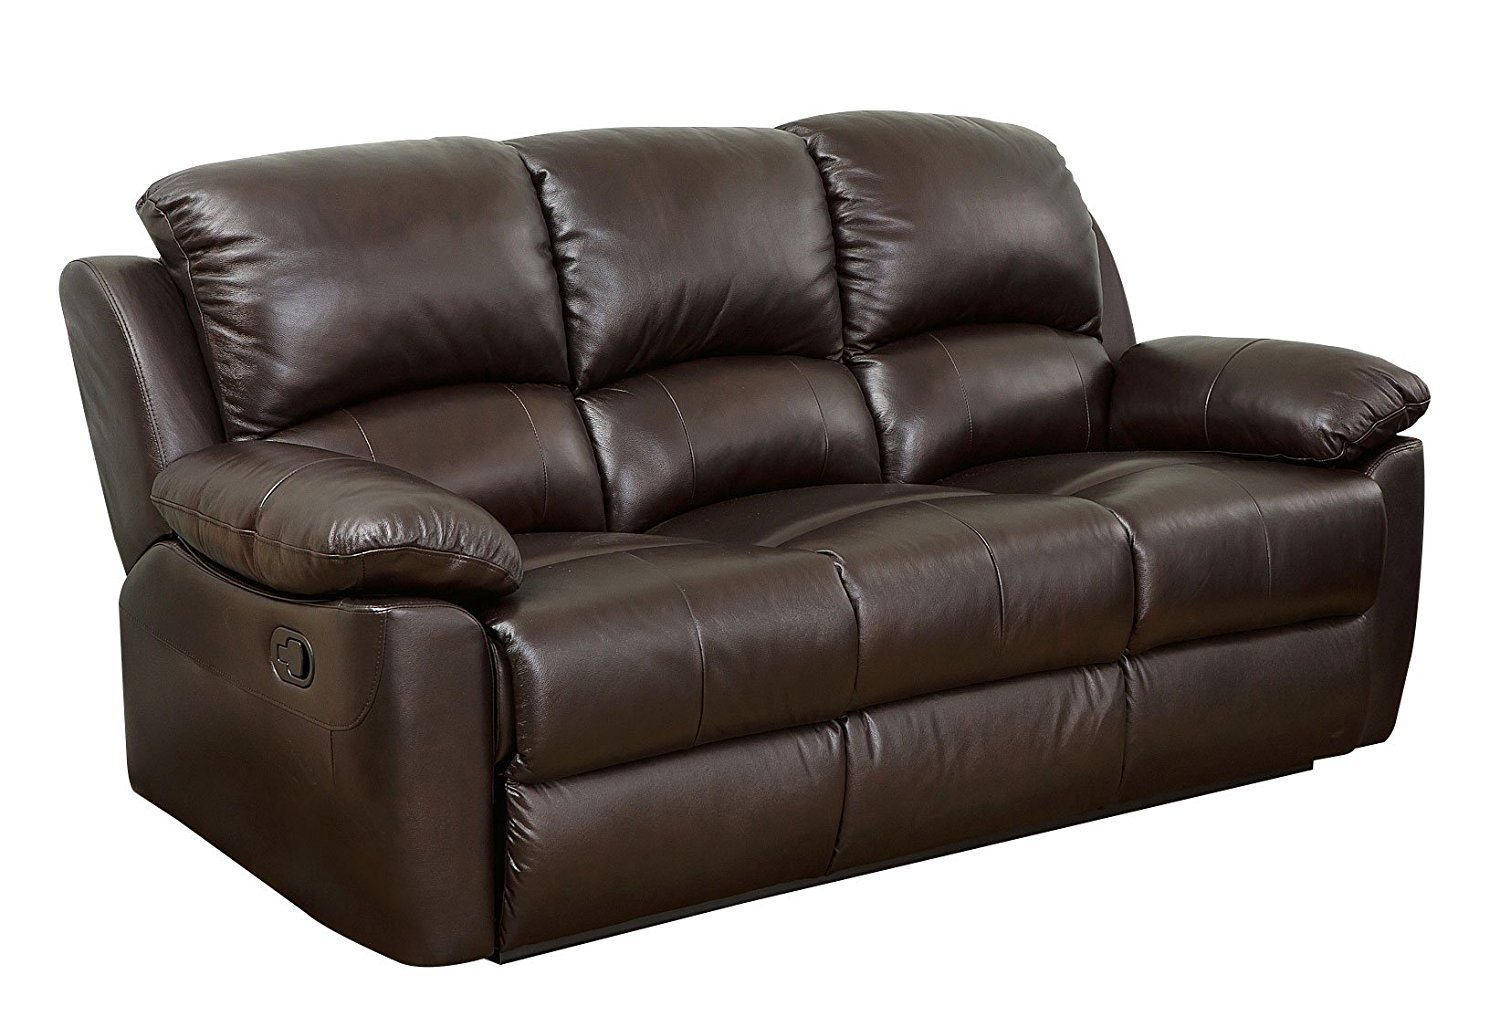 abbyson leather sofa which is posher couch or westwood top grain home furniture